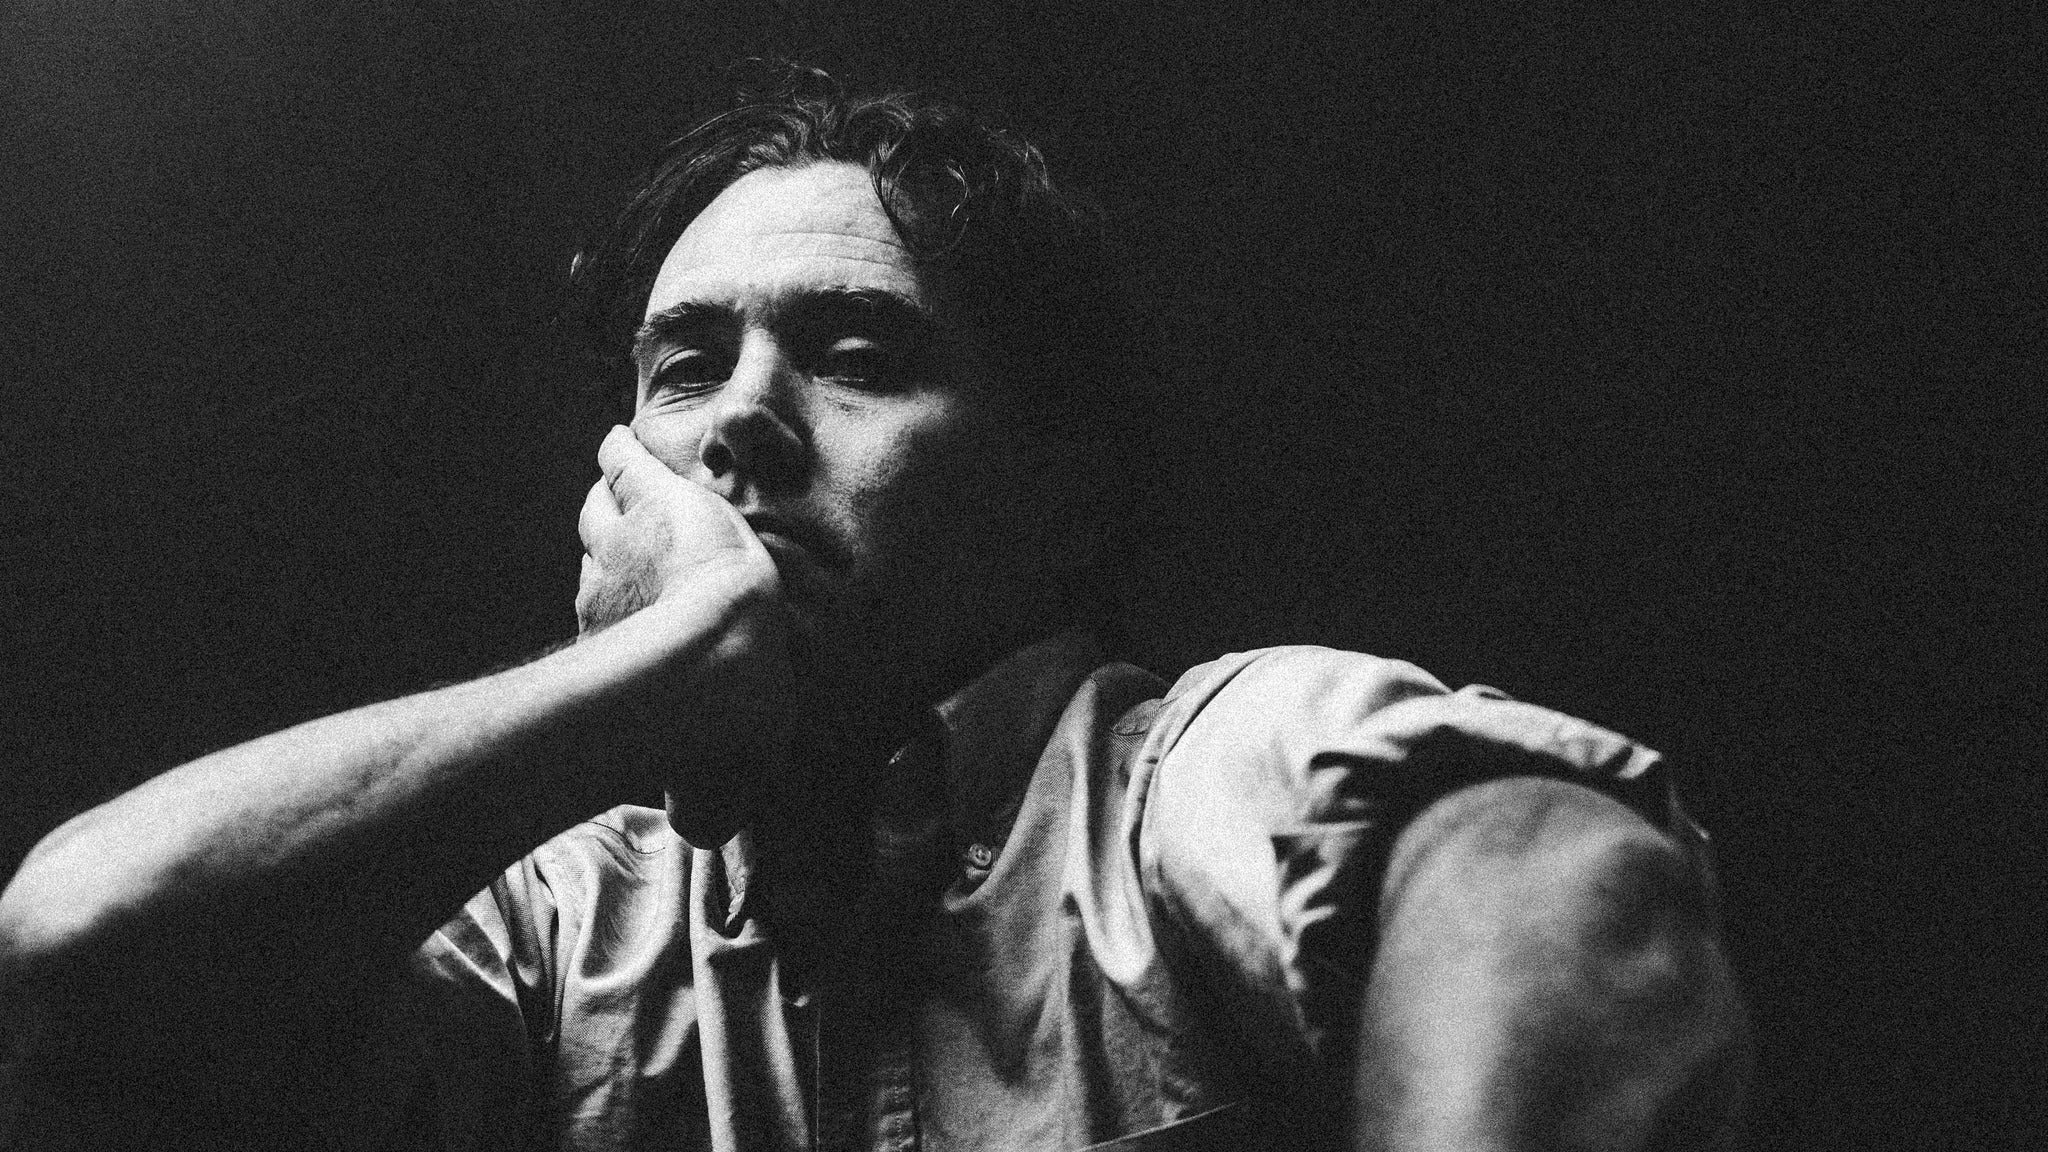 Cass McCombs at 191 Toole